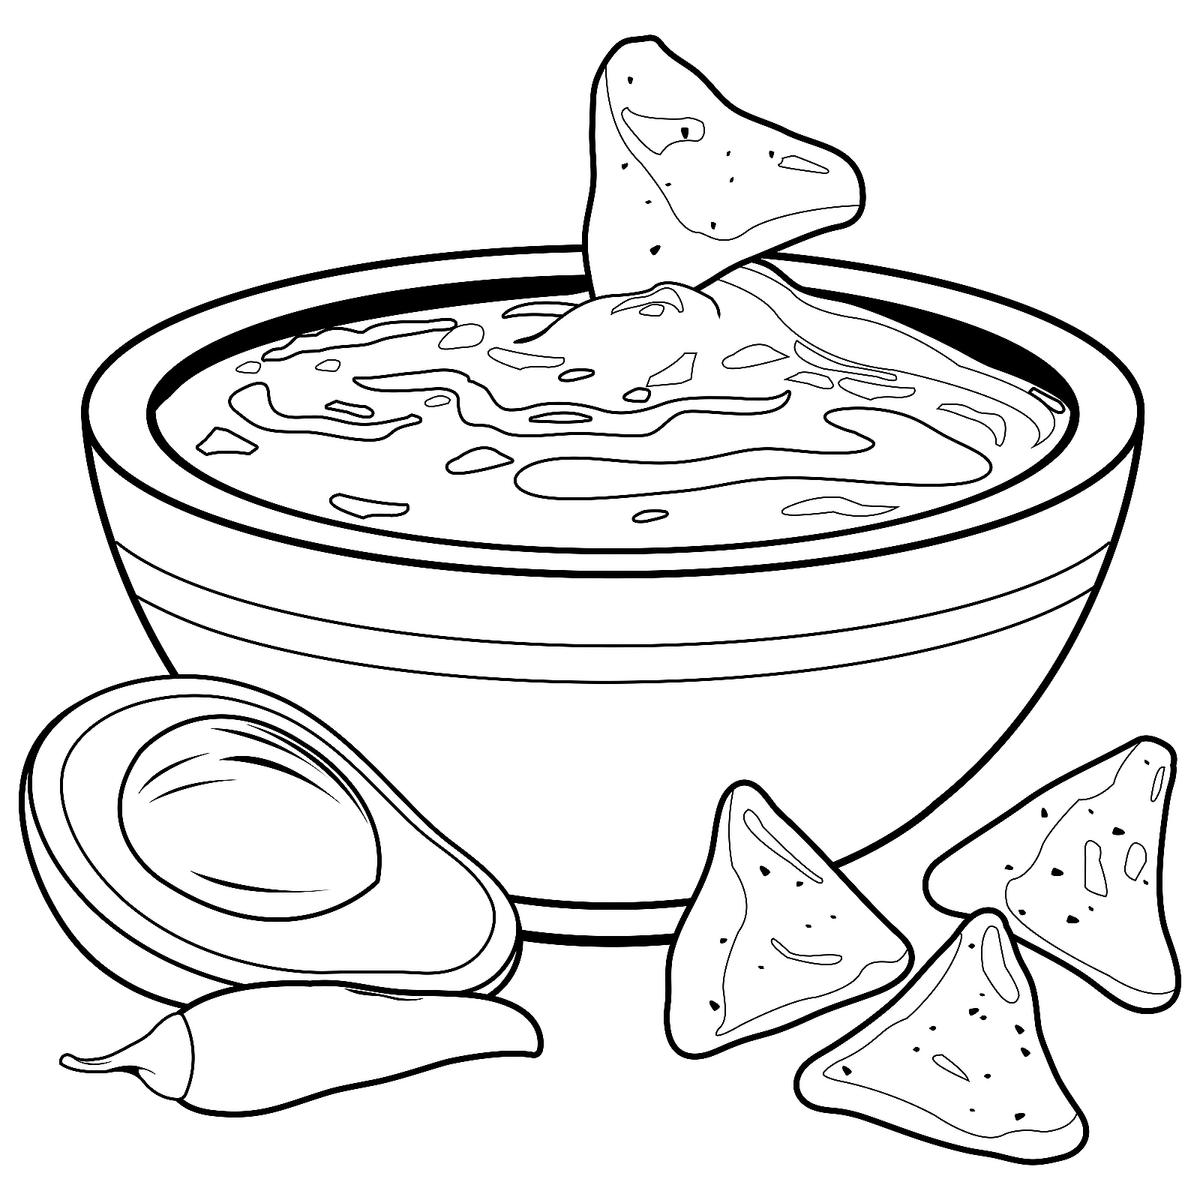 coloring pages food healthy food coloring pages to download and print for free pages coloring food